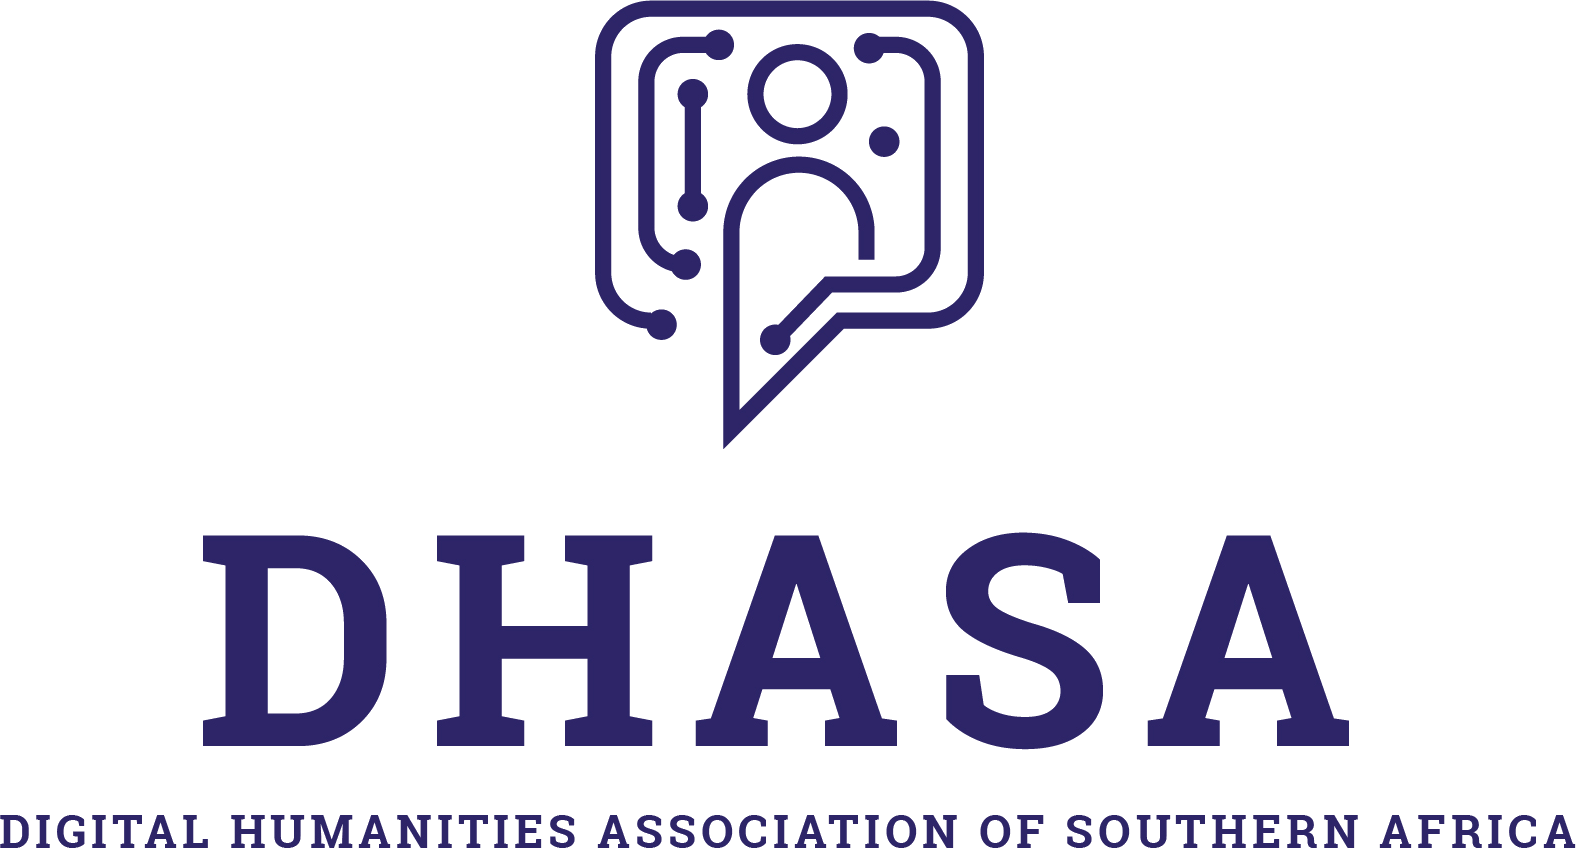 Logo of Digital Humanities Association of Southern Africa